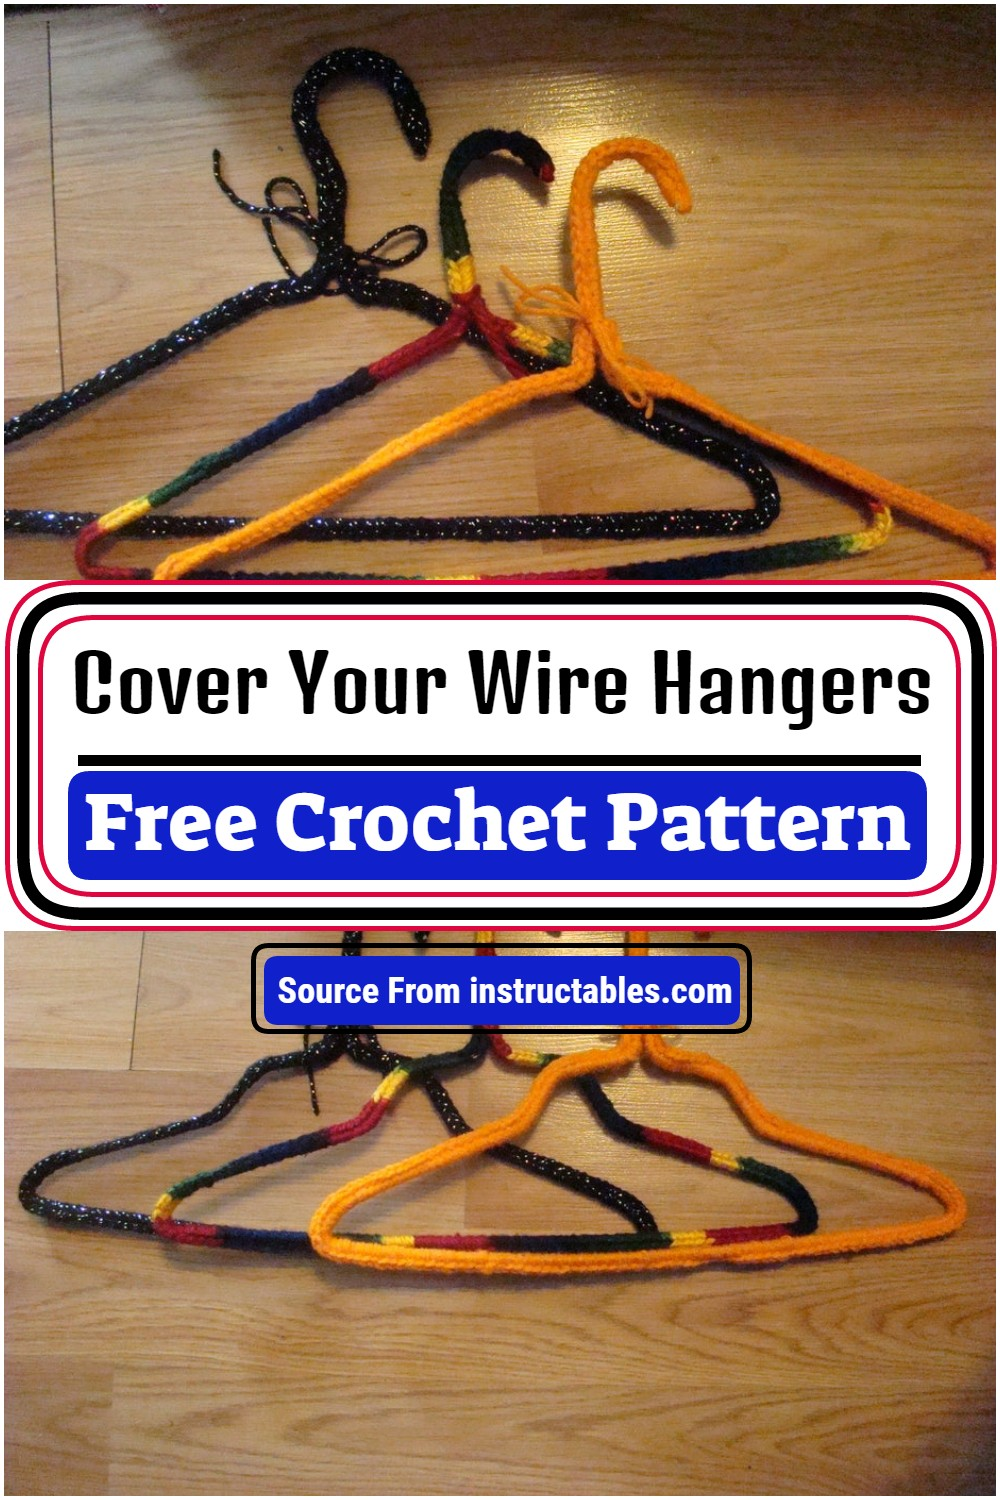 Free Crochet Cover Your Wire Hangers Pattern